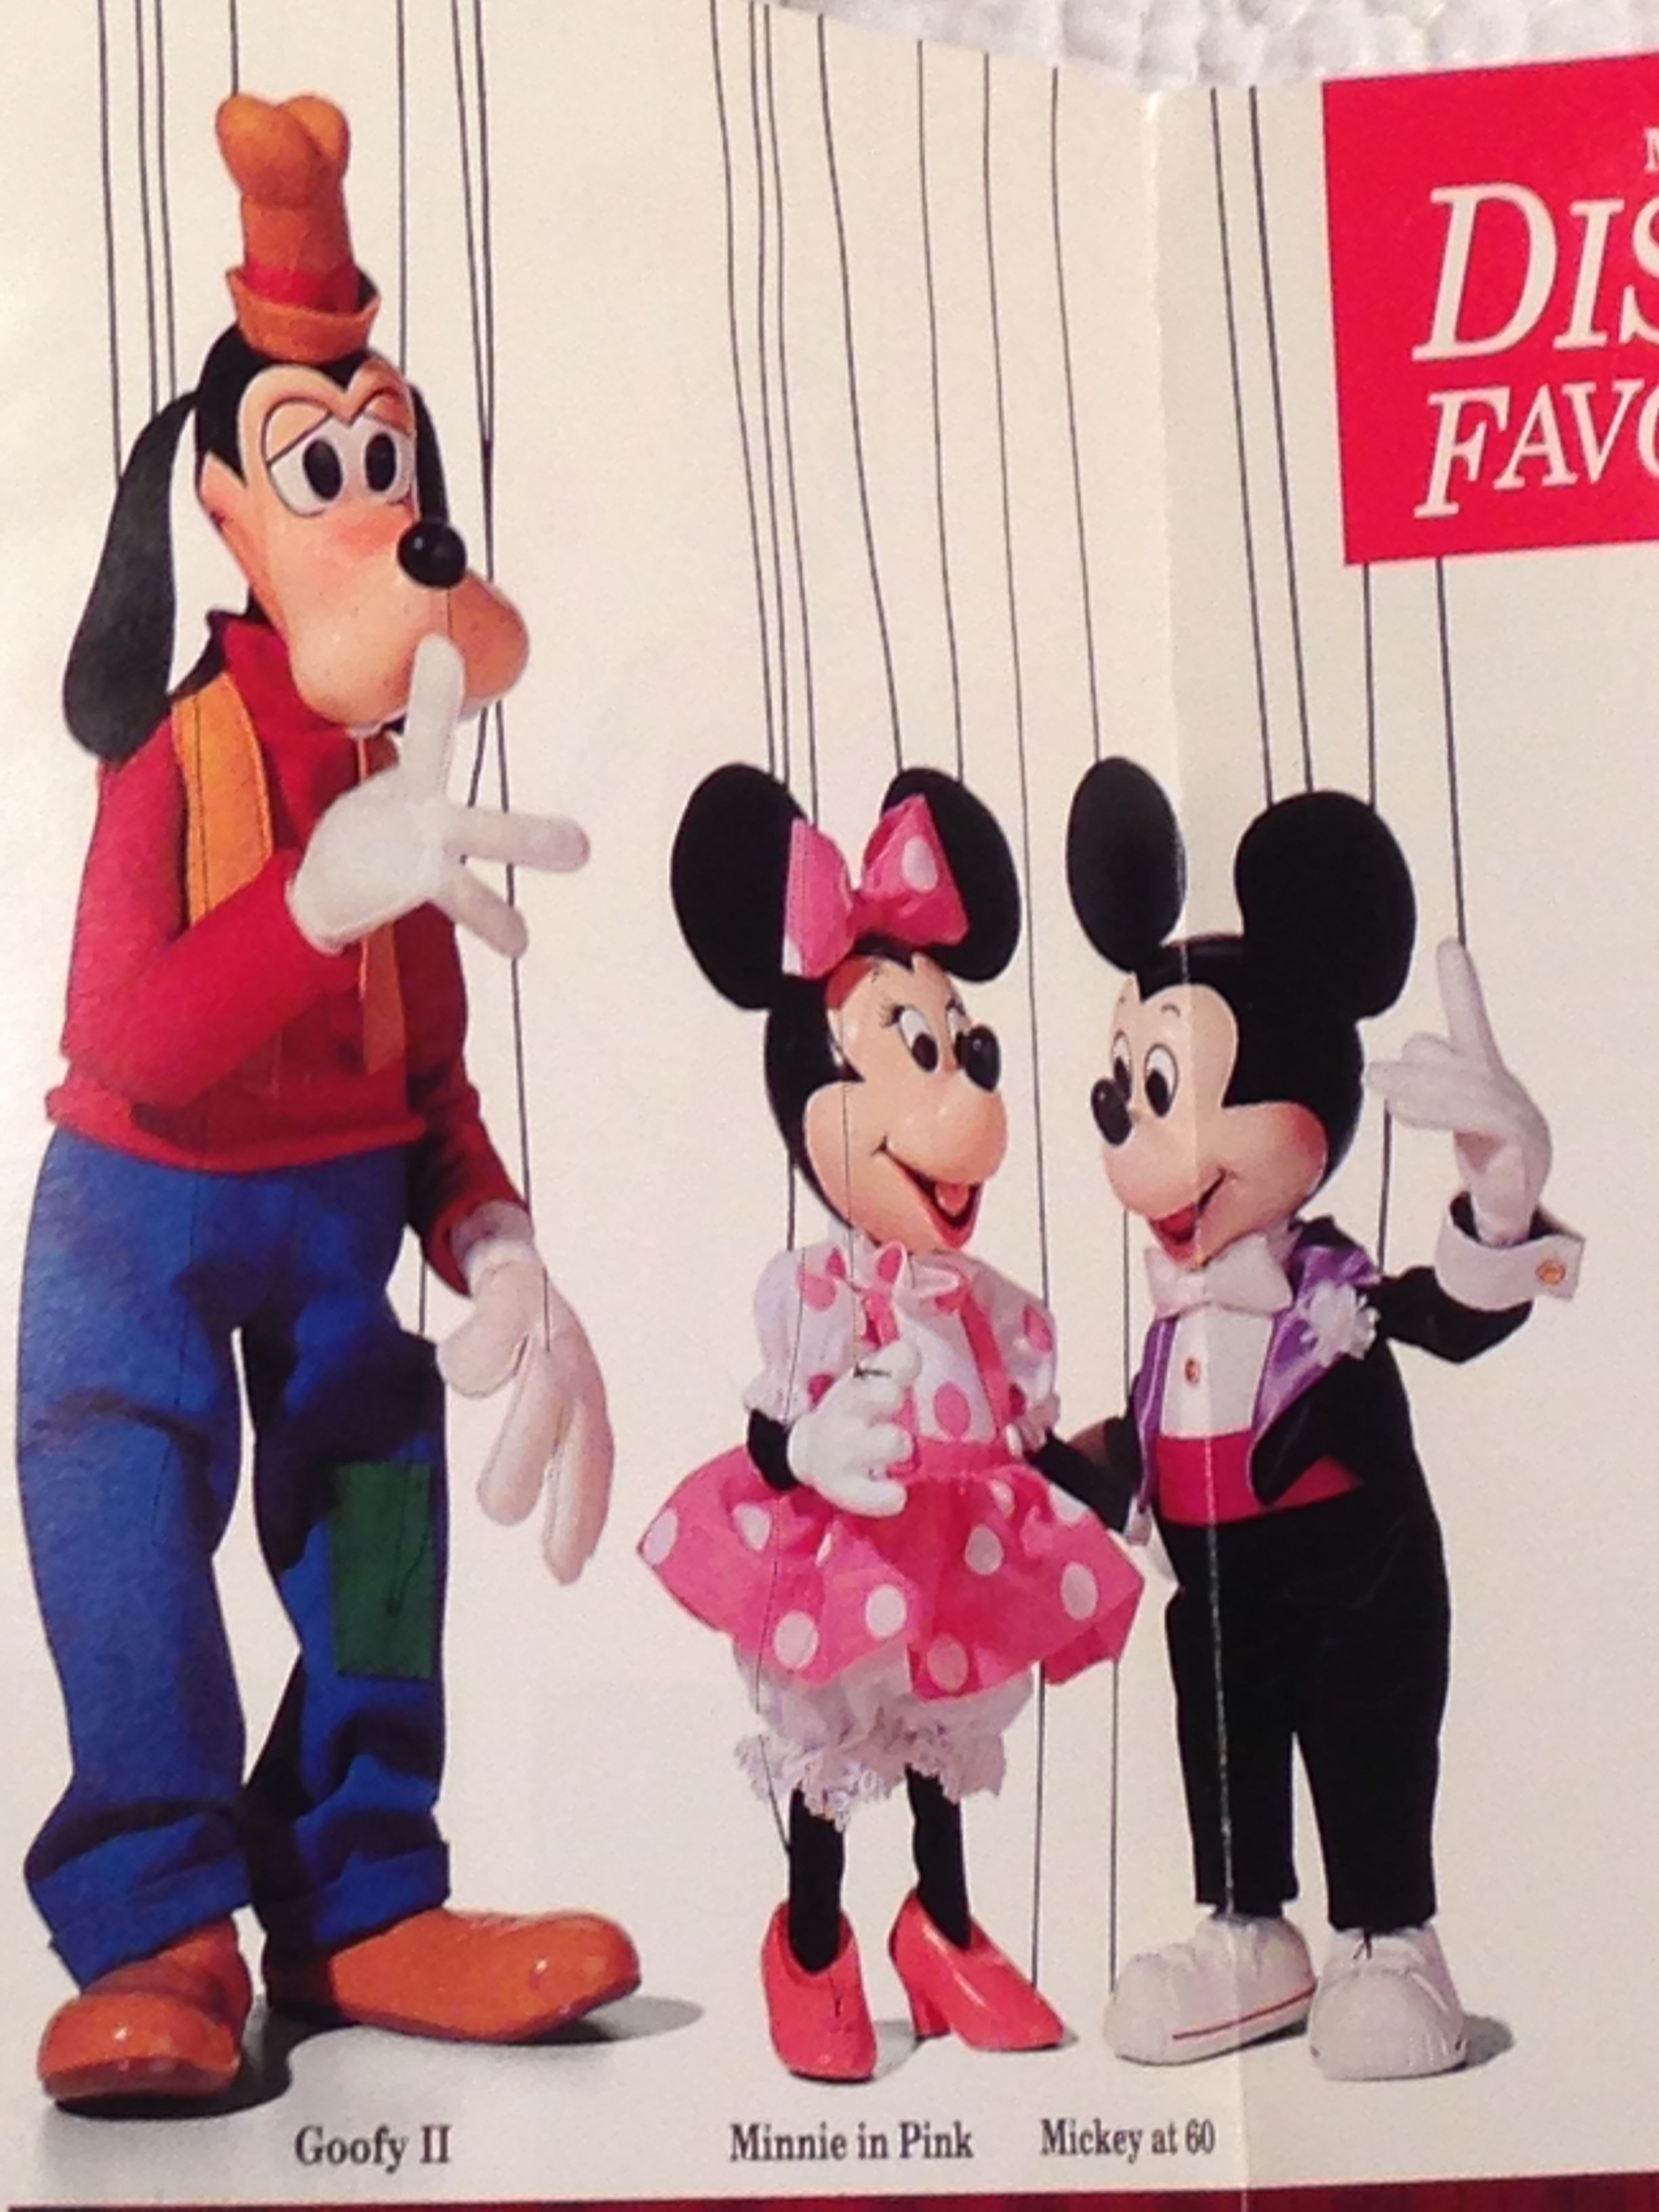 1ad194ec6 Disney's Bob Baker Marionette Collection - Goofy, Minnie in Pink, Mickey at  60